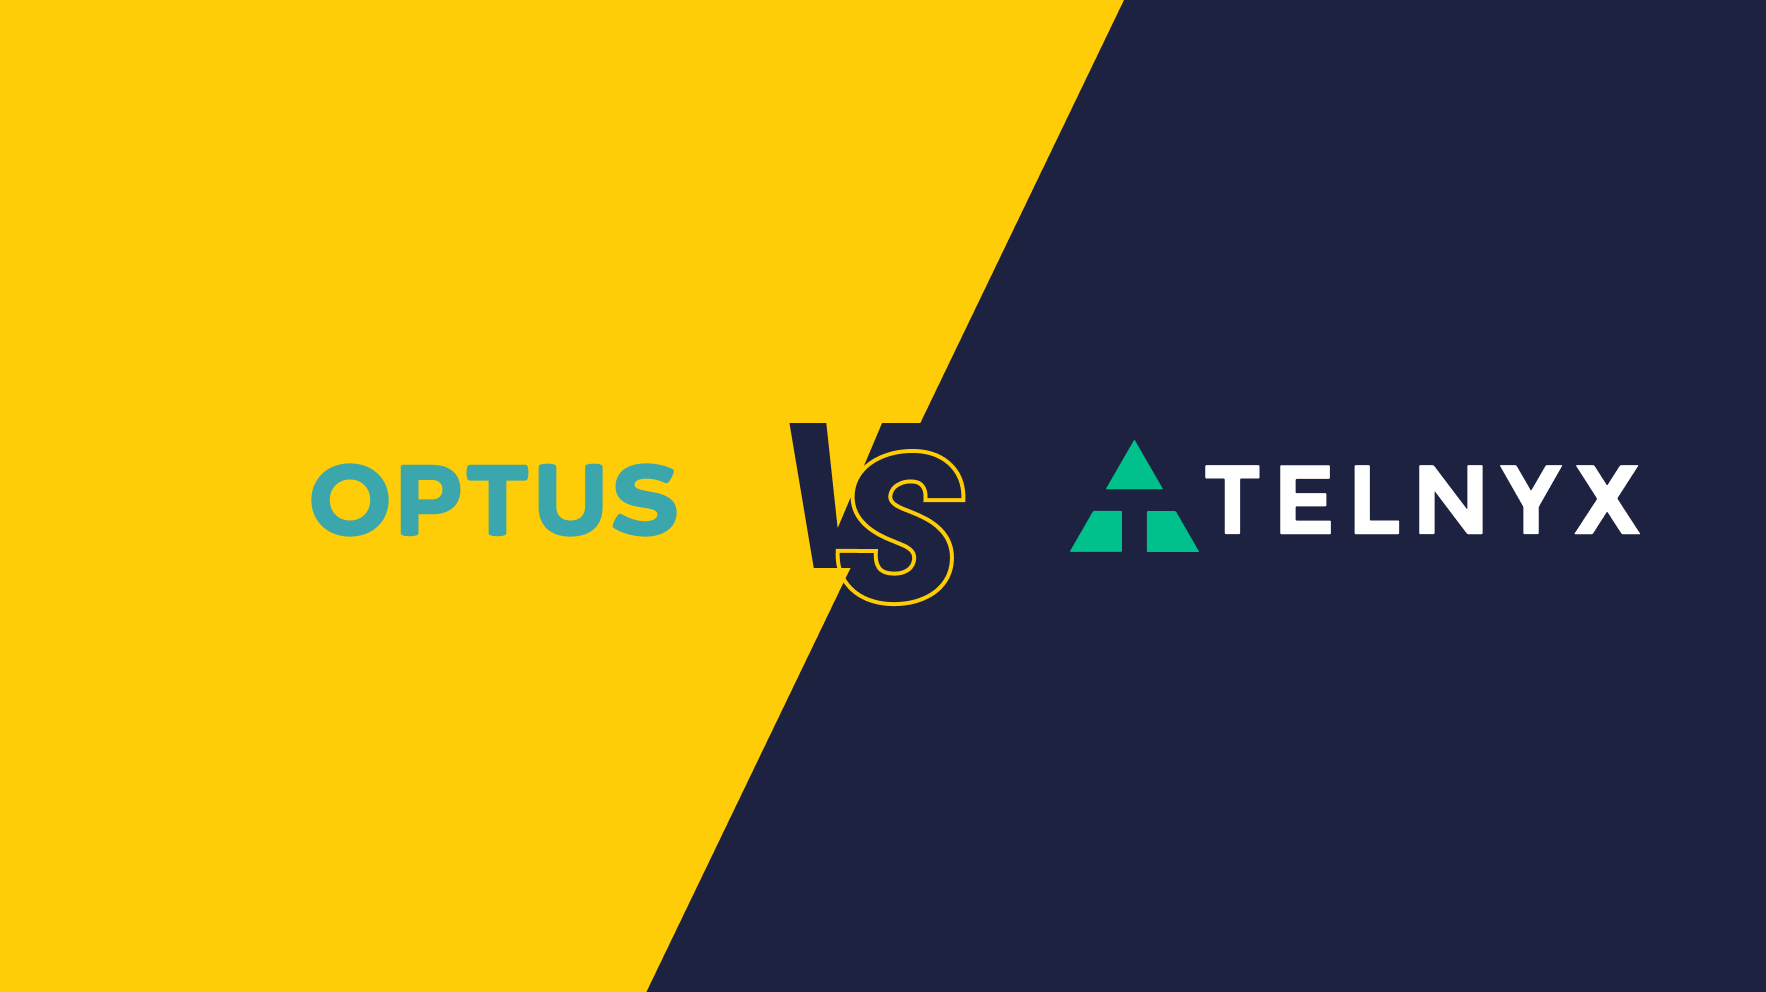 Comparing Telnyx vs. Optus for your VoIP needs.